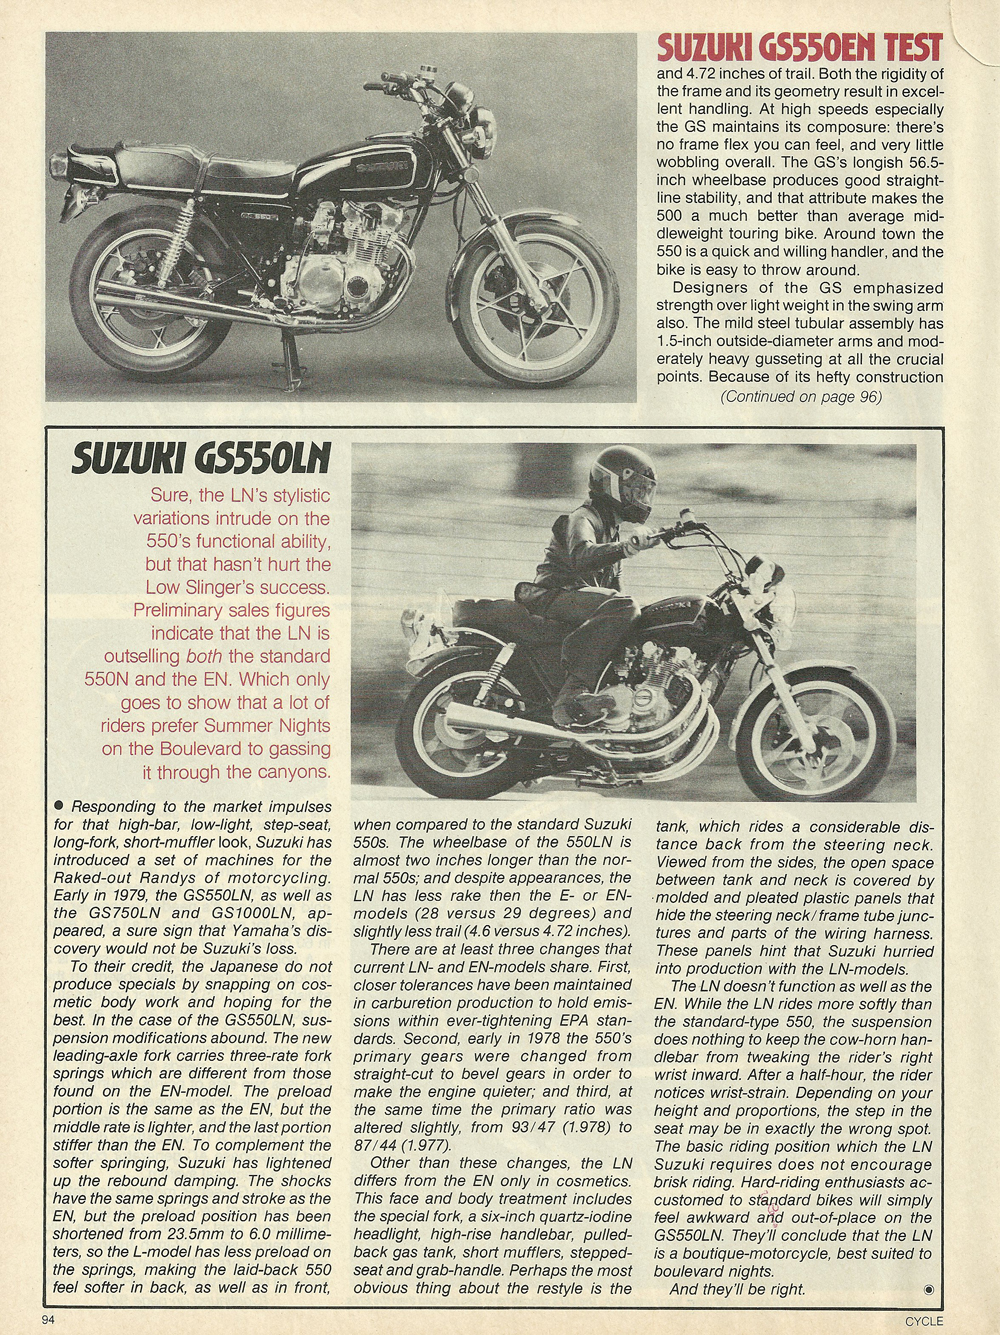 1979 Suzuki GS550EN road test 6.jpg